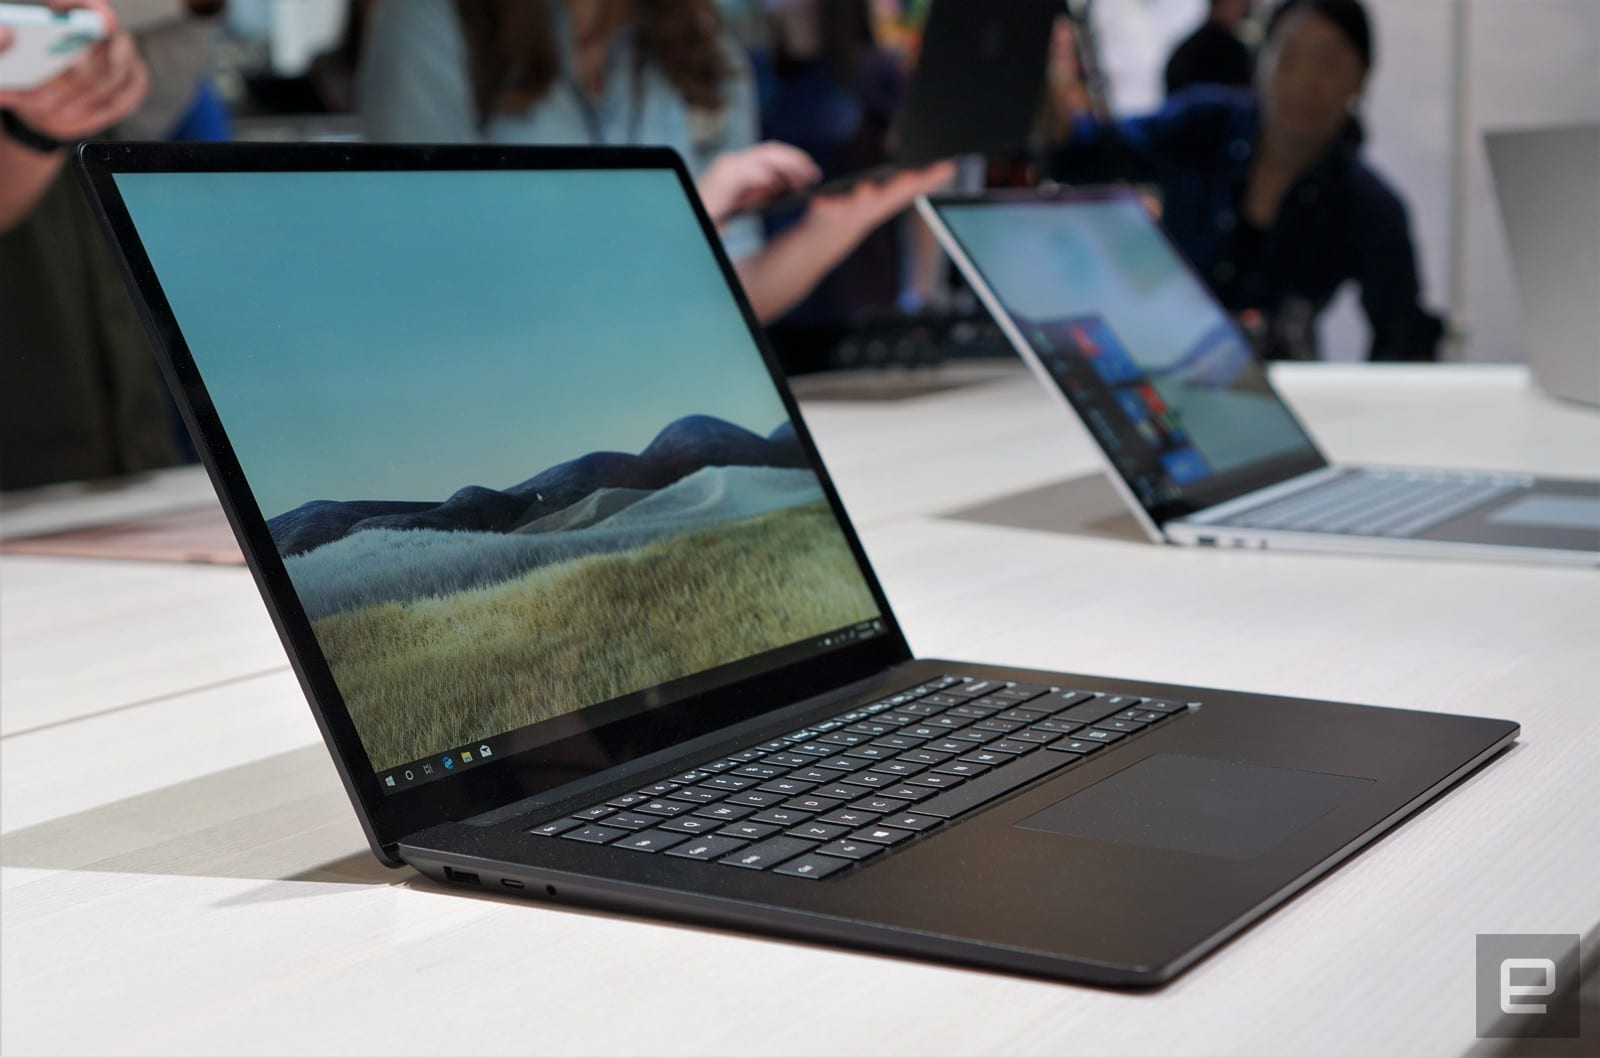 Save Up To 200 On A Surface Pro 7 Or Surface Laptop 3 At Amazon Engadget